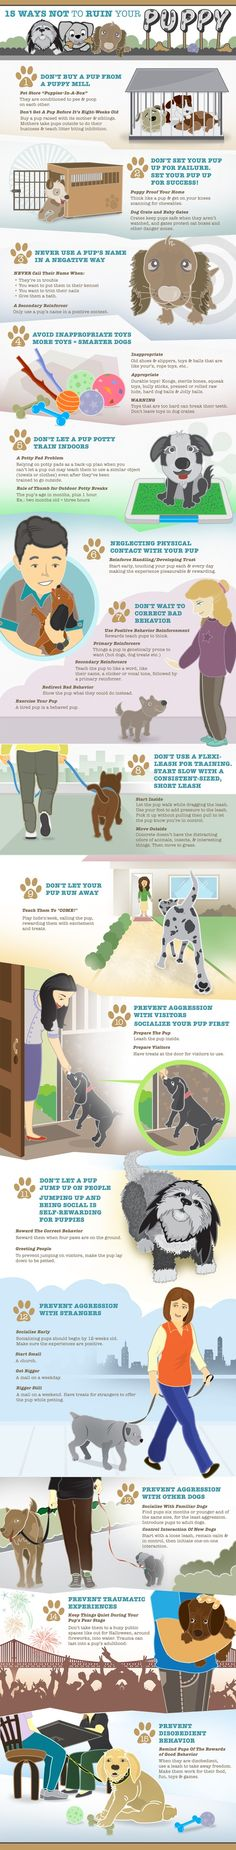 How to Not Ruin Your Puppy! This wonderfully comprehensive inforgraphic outlines the most important basics in puppy care and training. Learn how to grow yourself a happy, obedient pup! #puppies #dogtraining